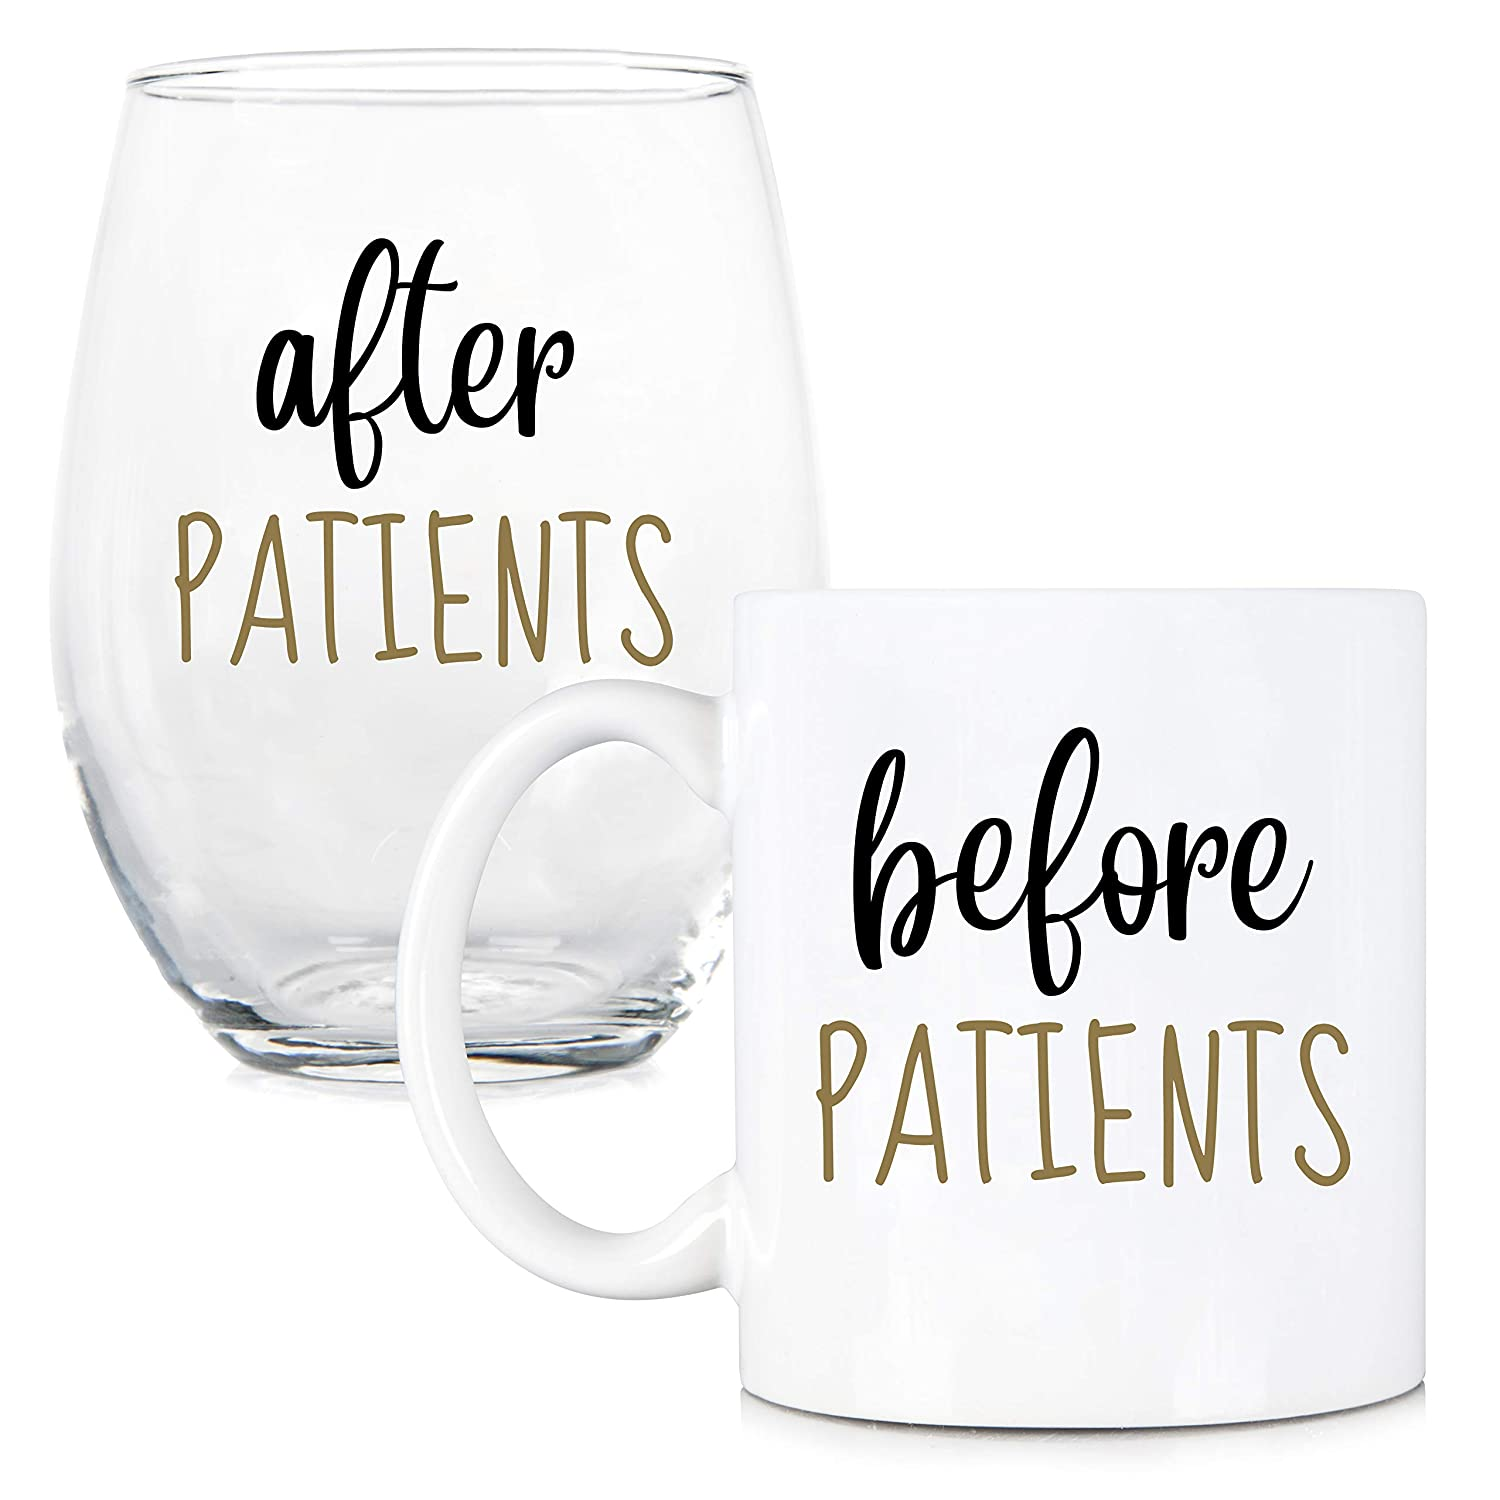 Before Patients, After Patients 11 oz Coffee Mug and 15 oz Stemless Wine Glass Set - Unique Gift Idea for Dentist, Dental, Medical, Hygienist, Doctor, Physician, Nurse - Perfect Graduation Gifts